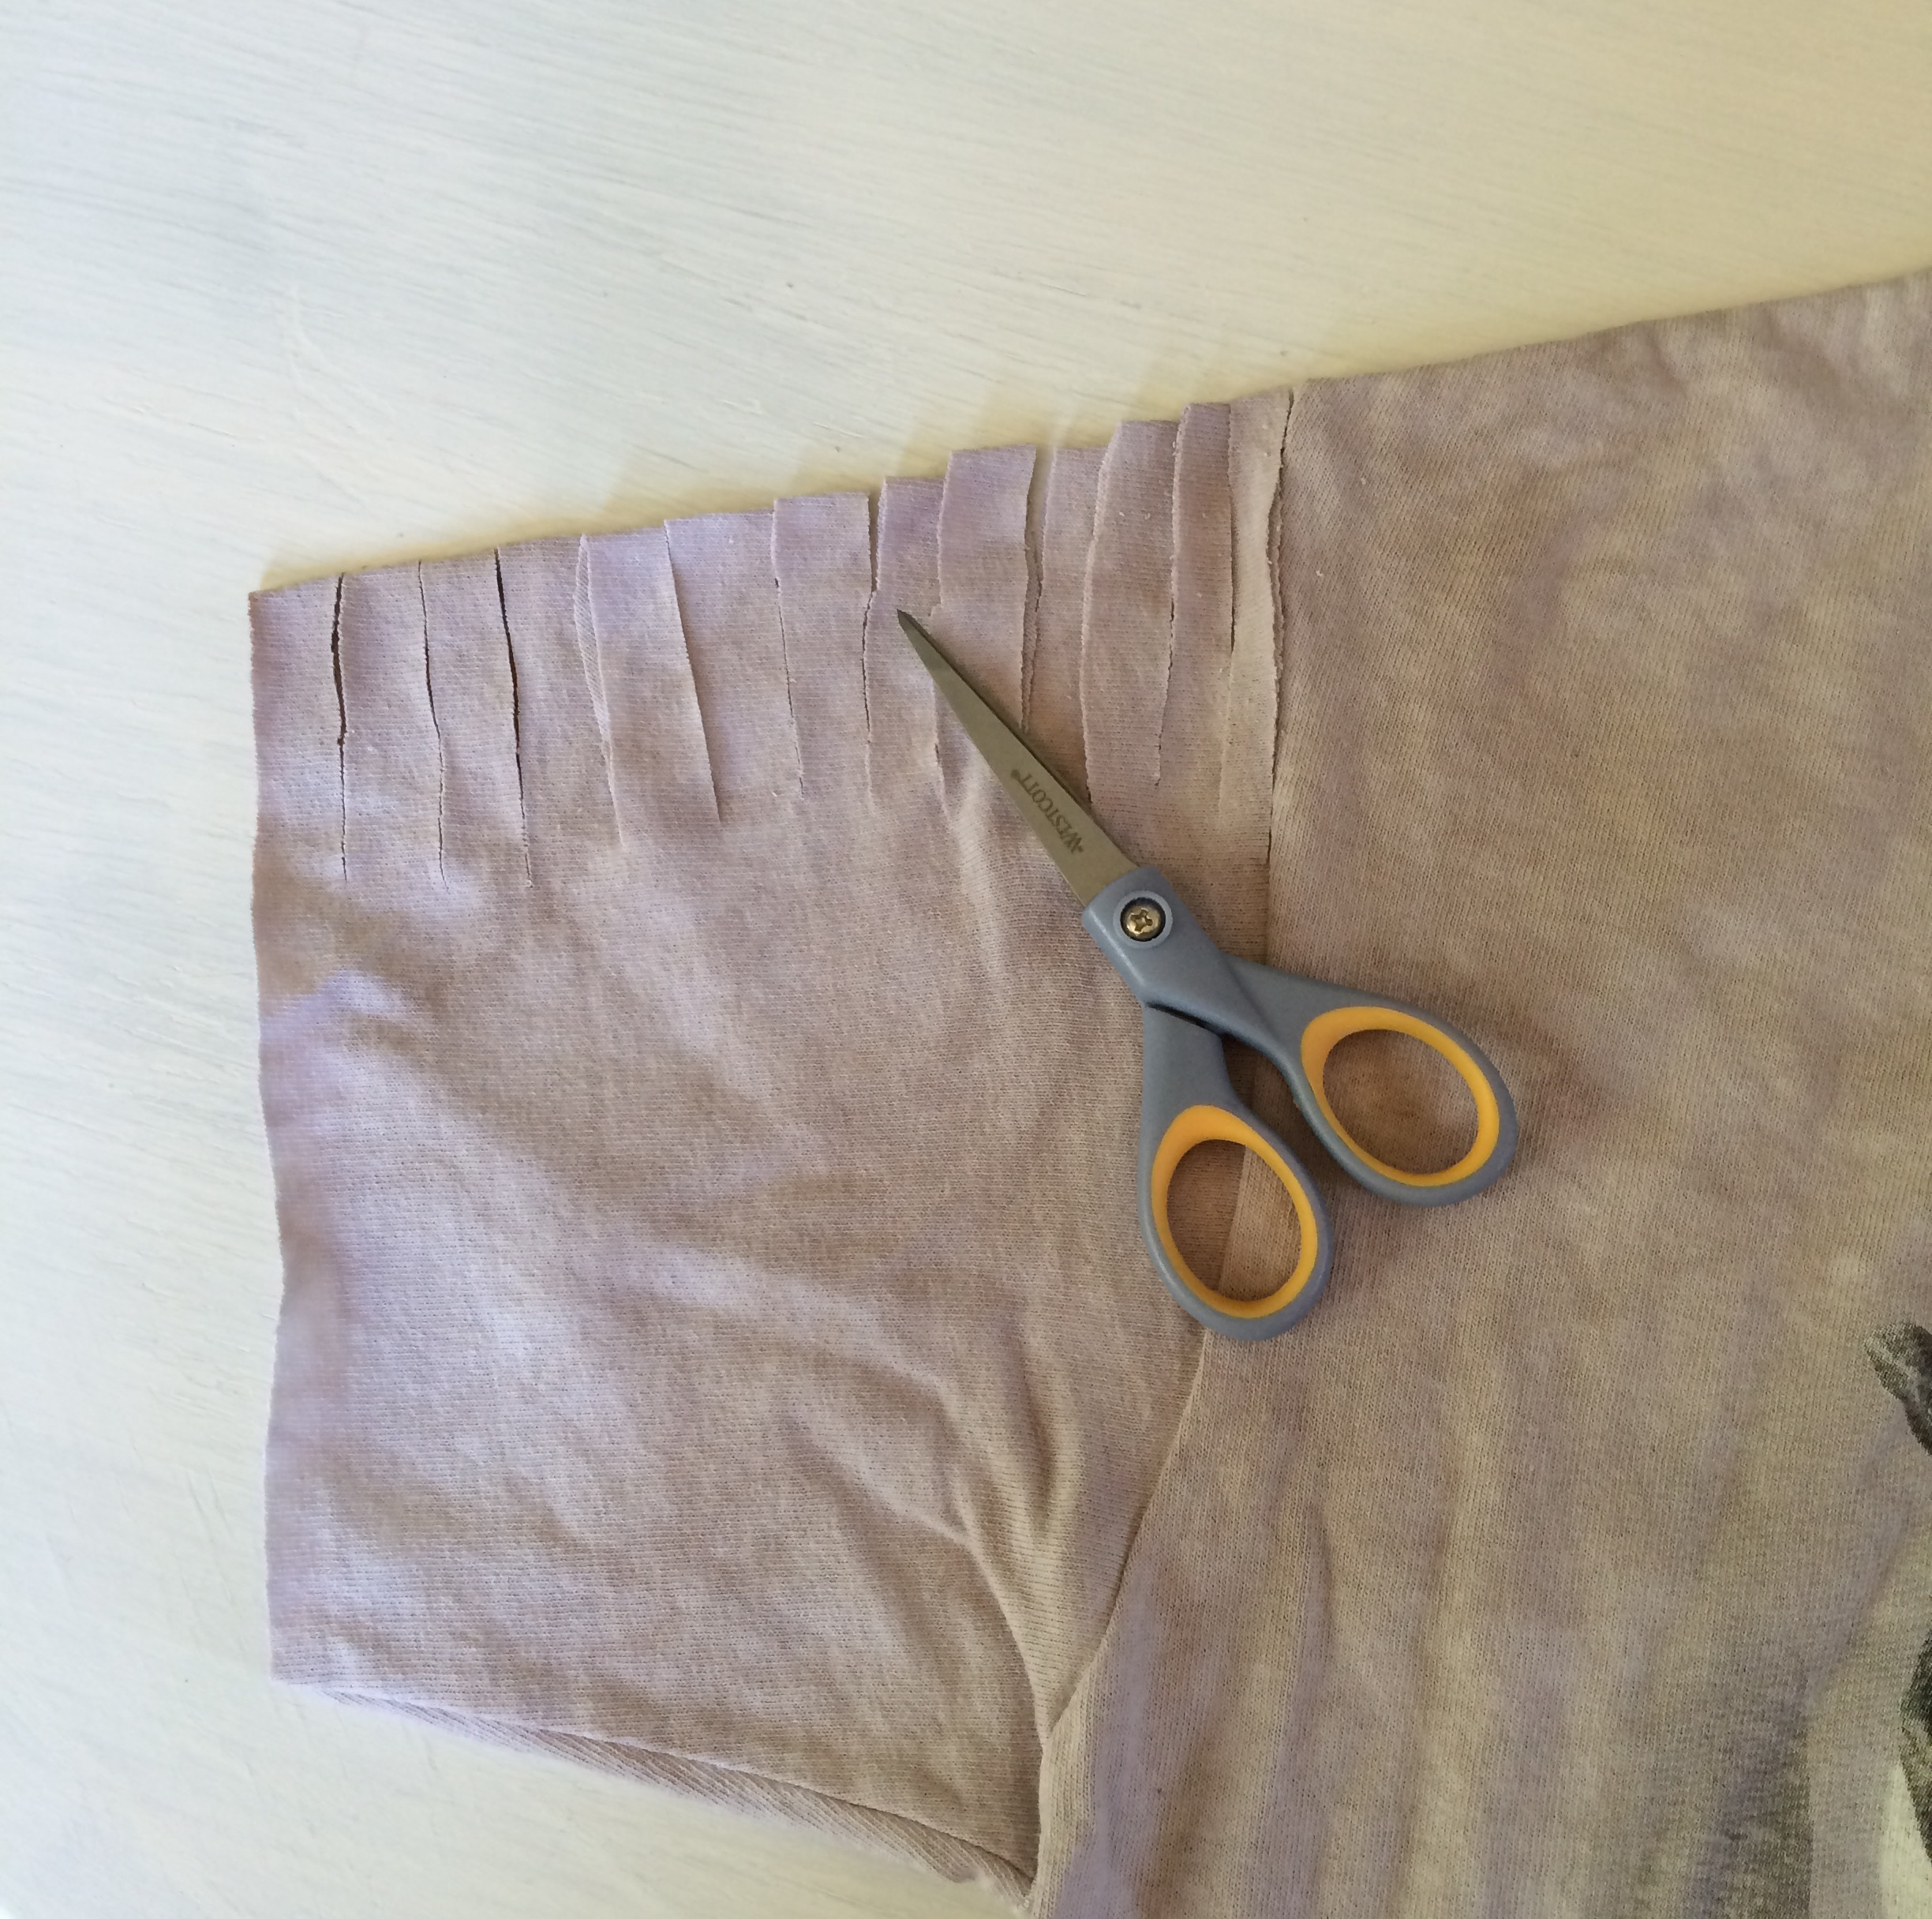 2. Make even cuts along the top of the sleeve. It's up to you how deep you want to make the cuts.